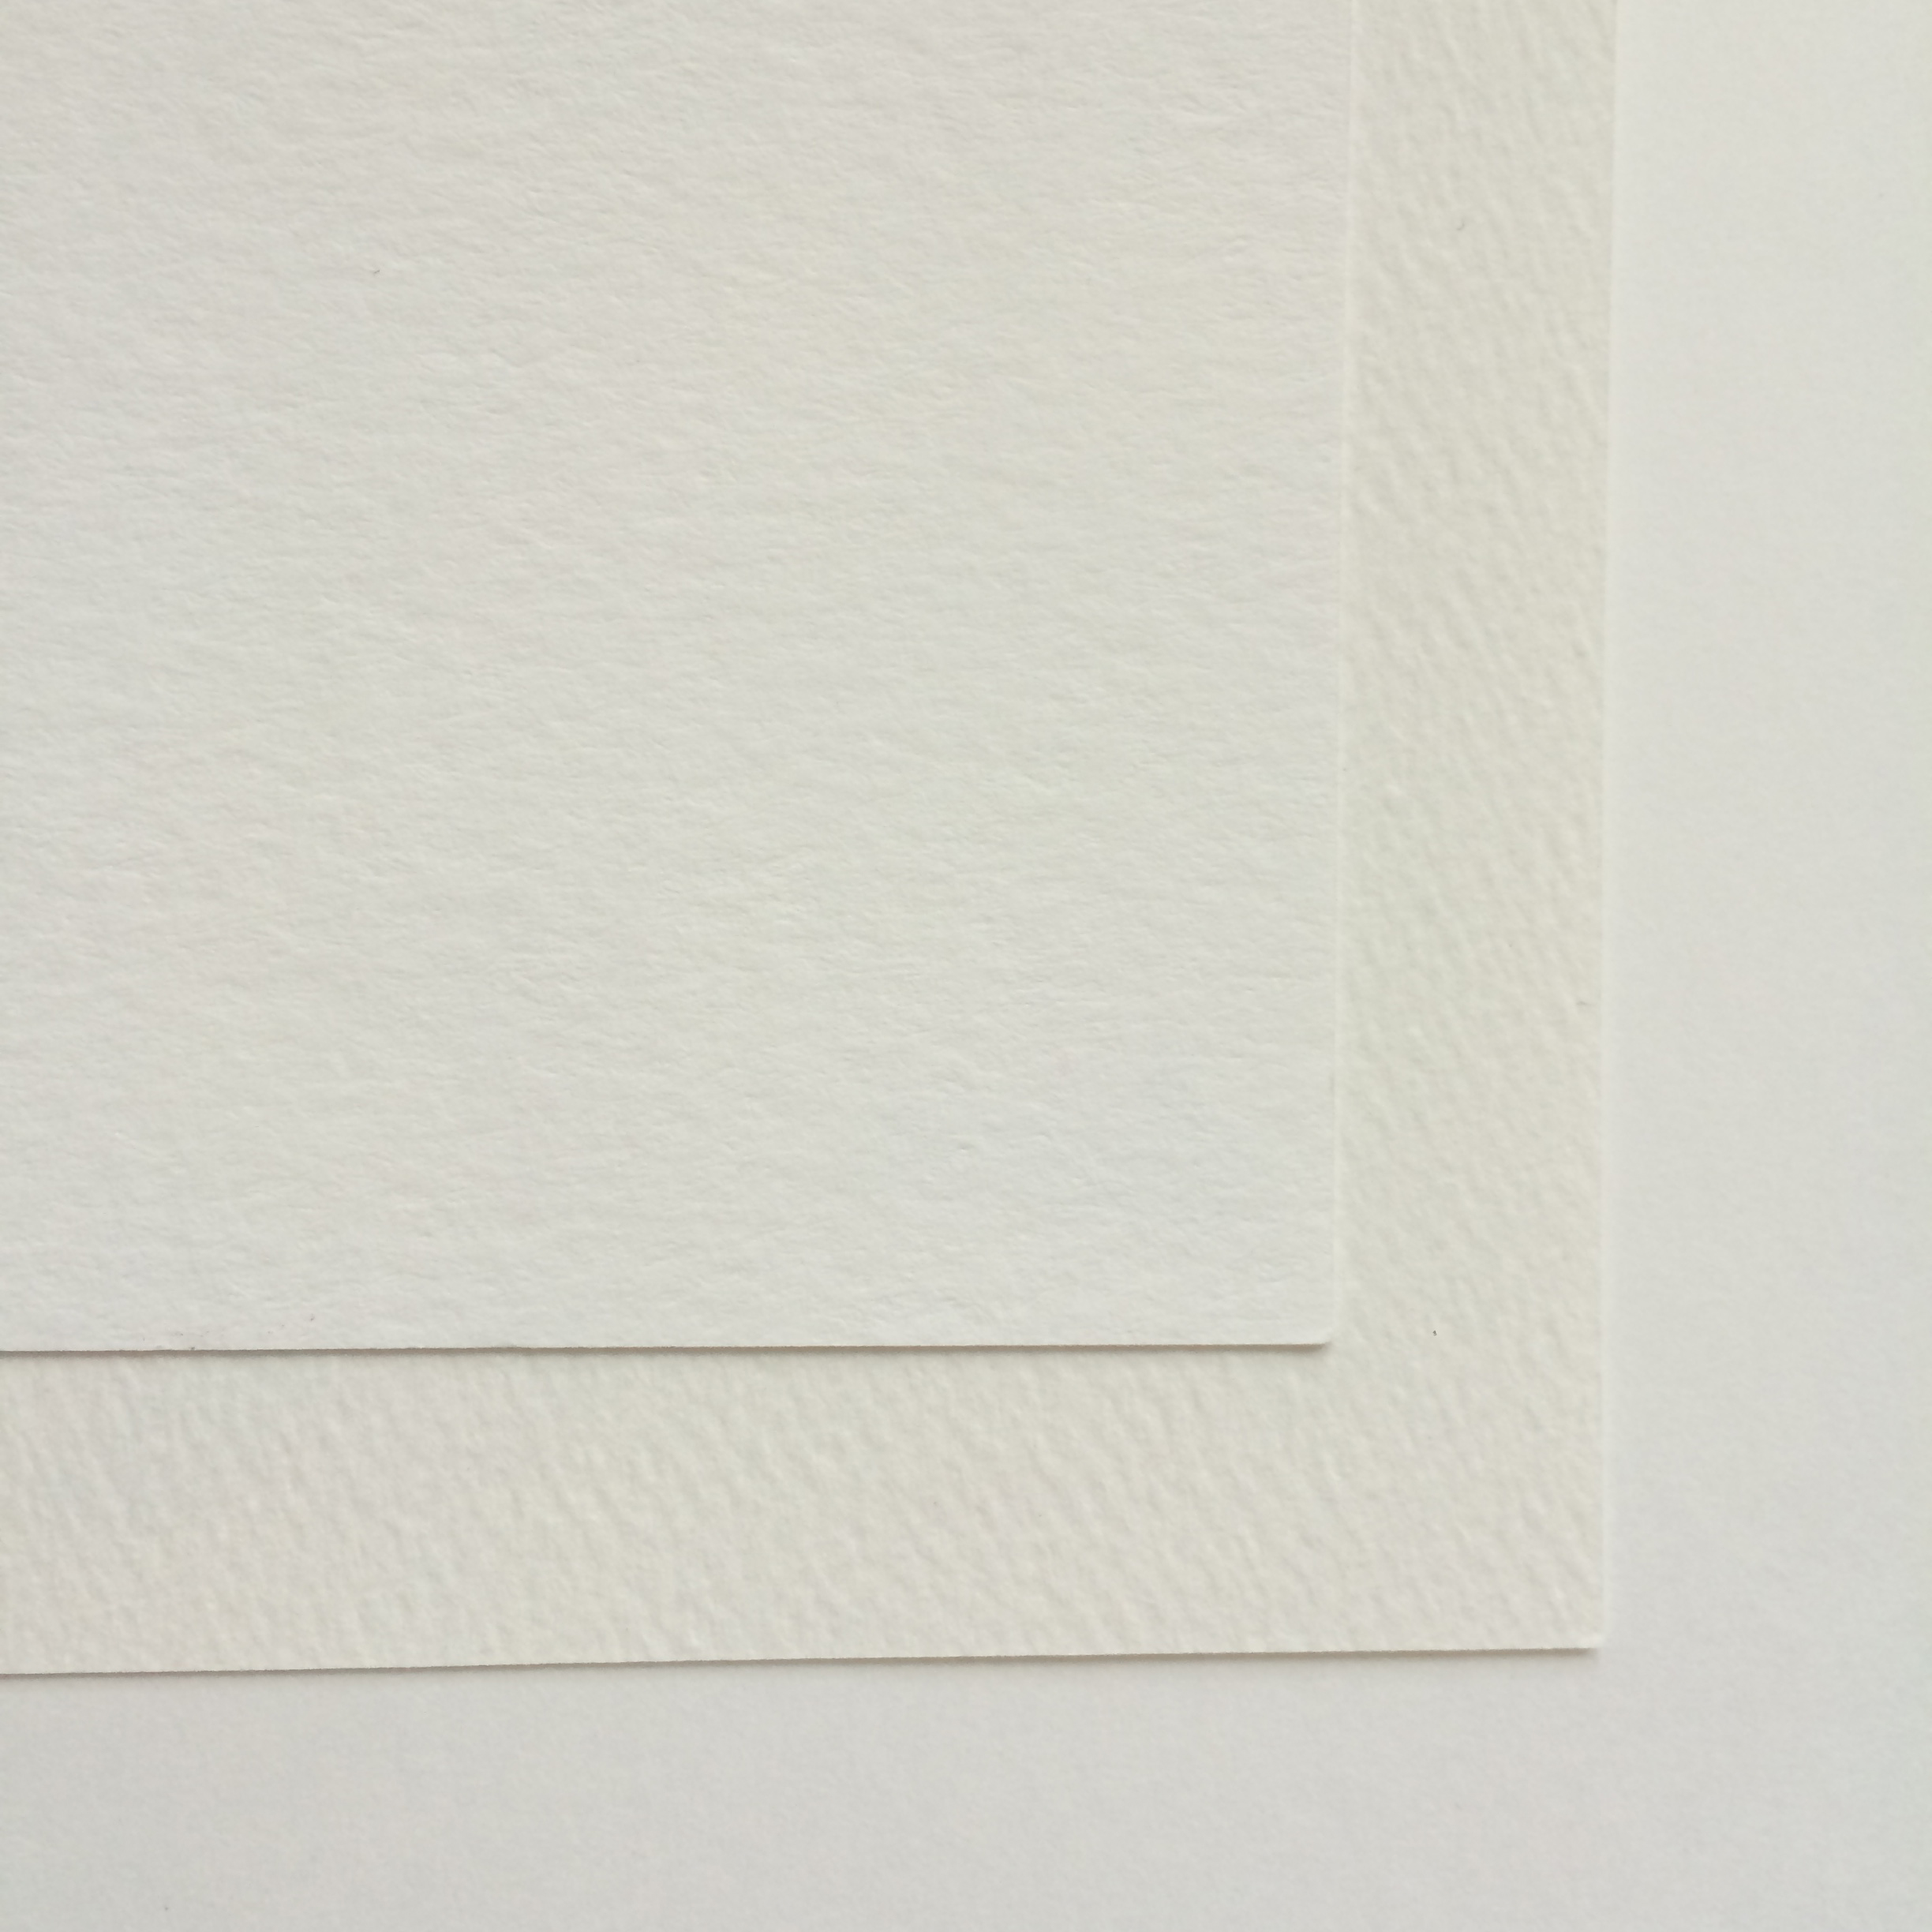 FROM LEFT TO RIGHT: COTTON (TOP), FELT (MIDDLE) AND UNCOATED (BOTTOM) CARD STOCK